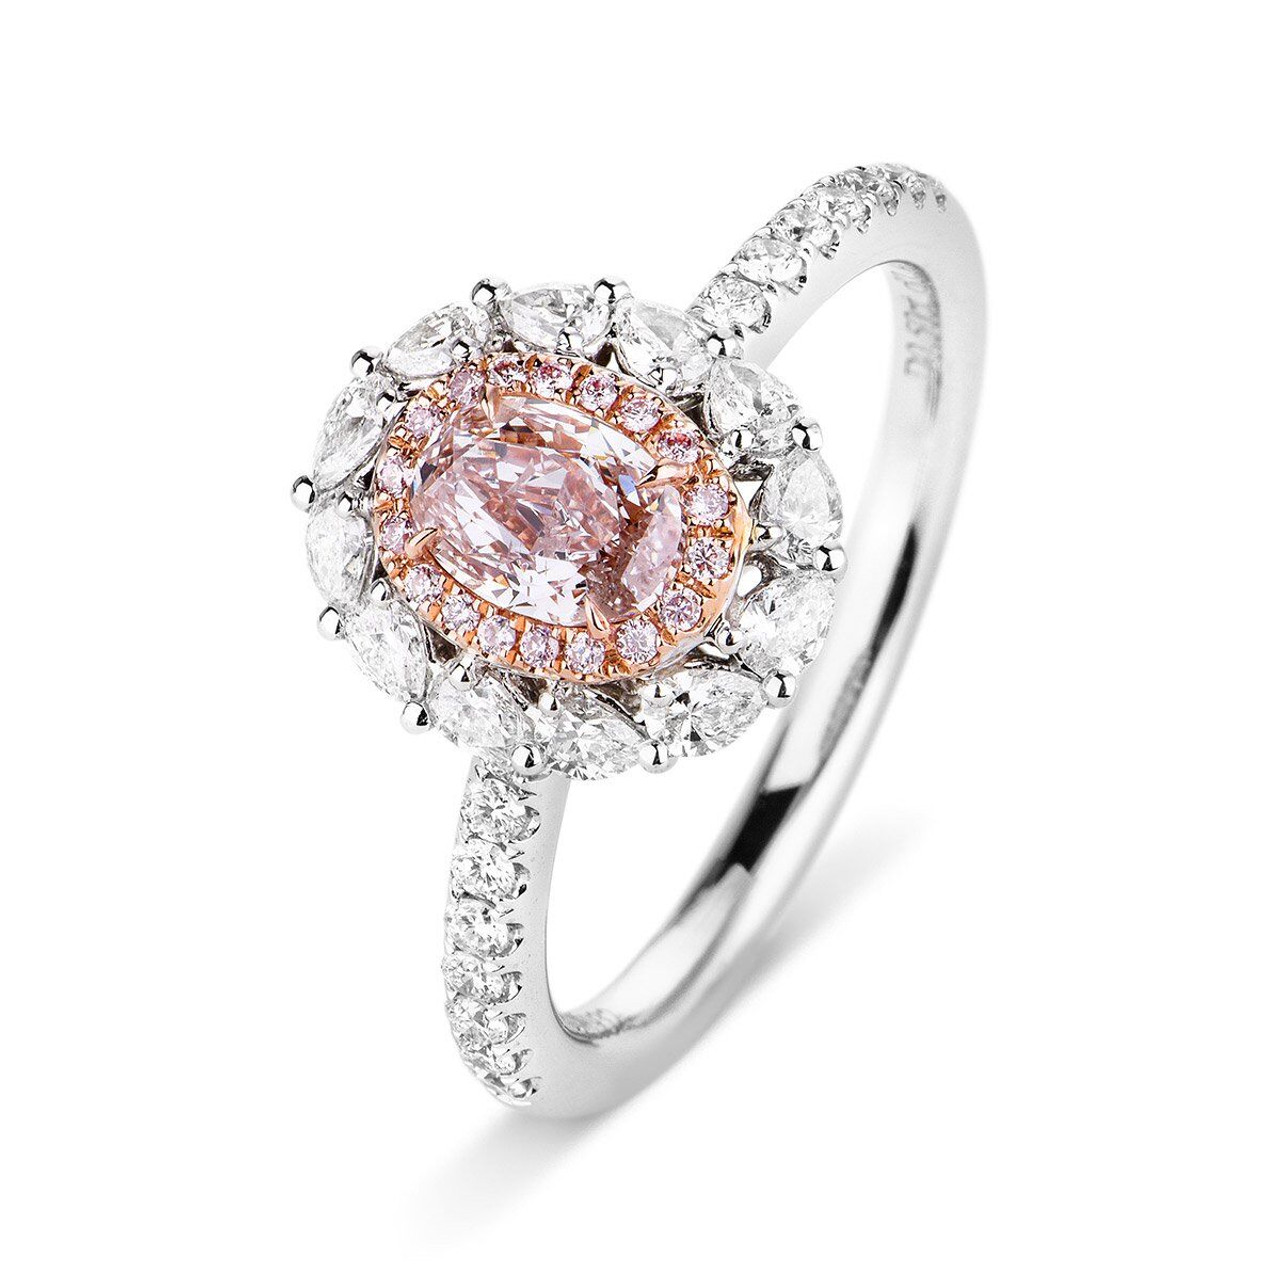 18kt White and Rose Gold Pear Halo Oval Pink Diamond Ring